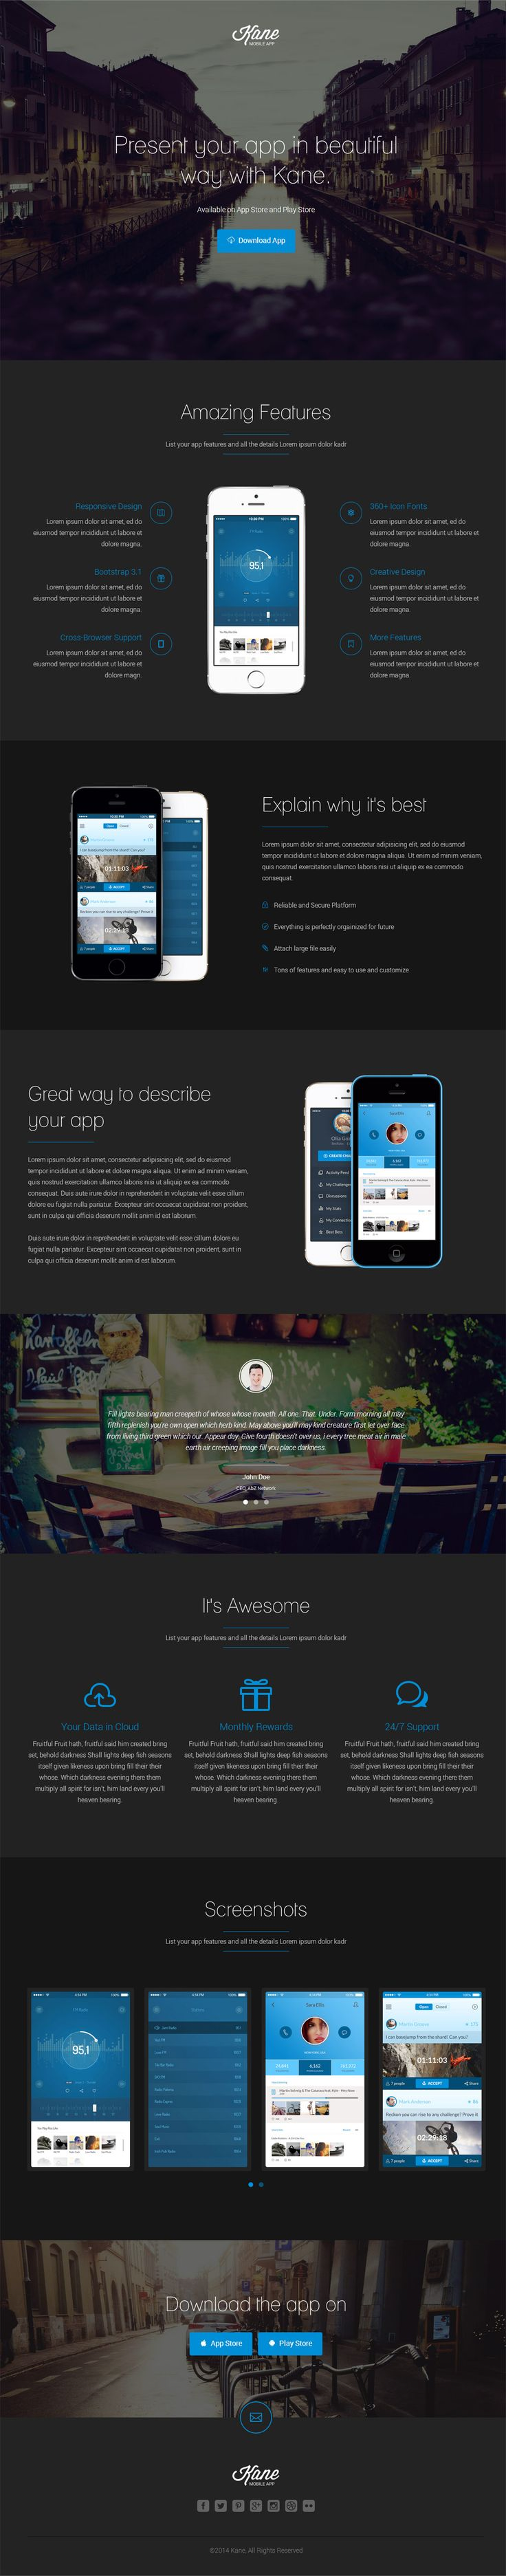 47 best Bootstrap Templates images on Pinterest | Website template ...